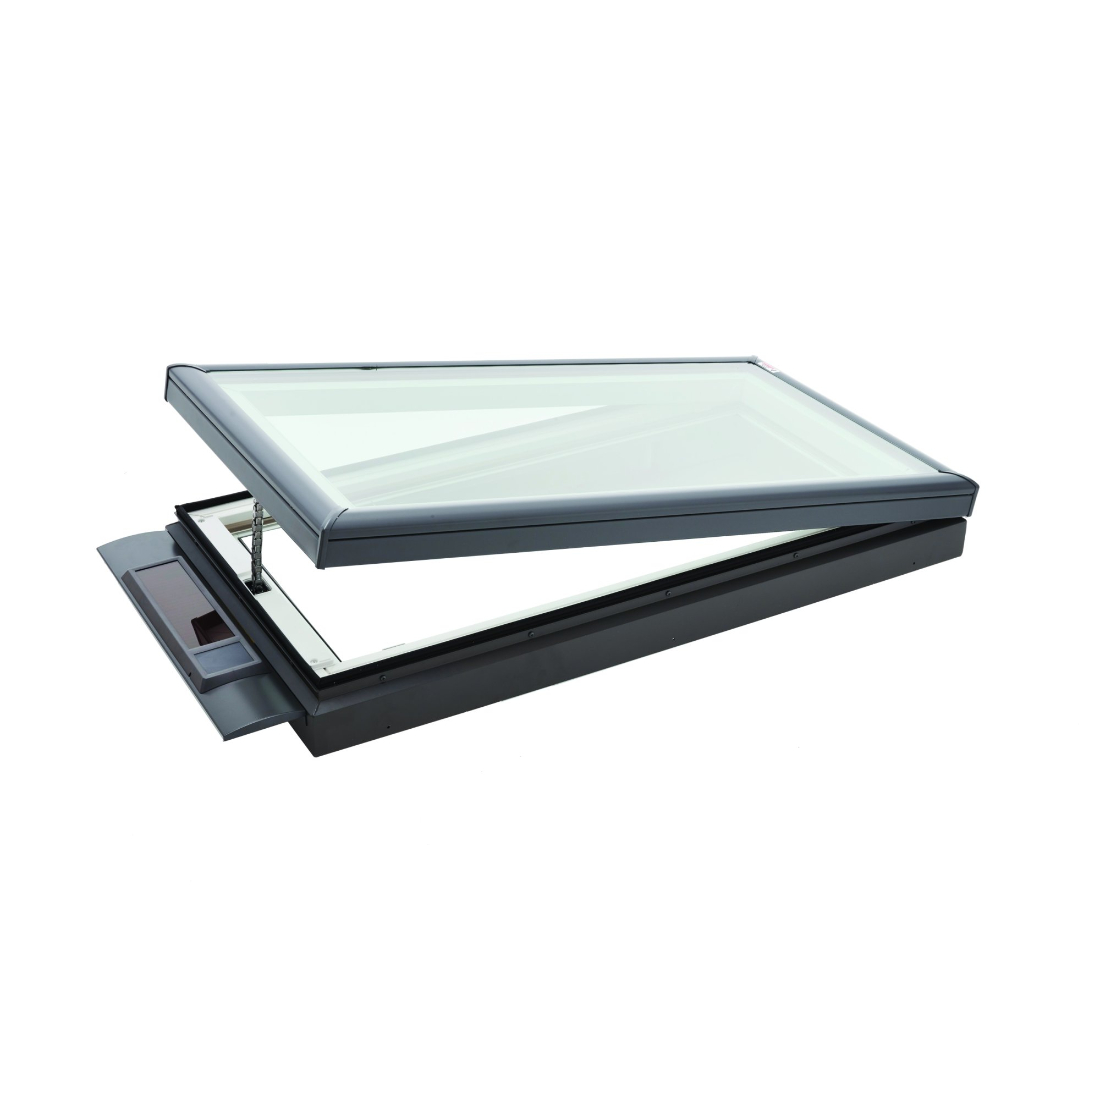 Low Pitch Solar Opening Skylight 895 x 895mm